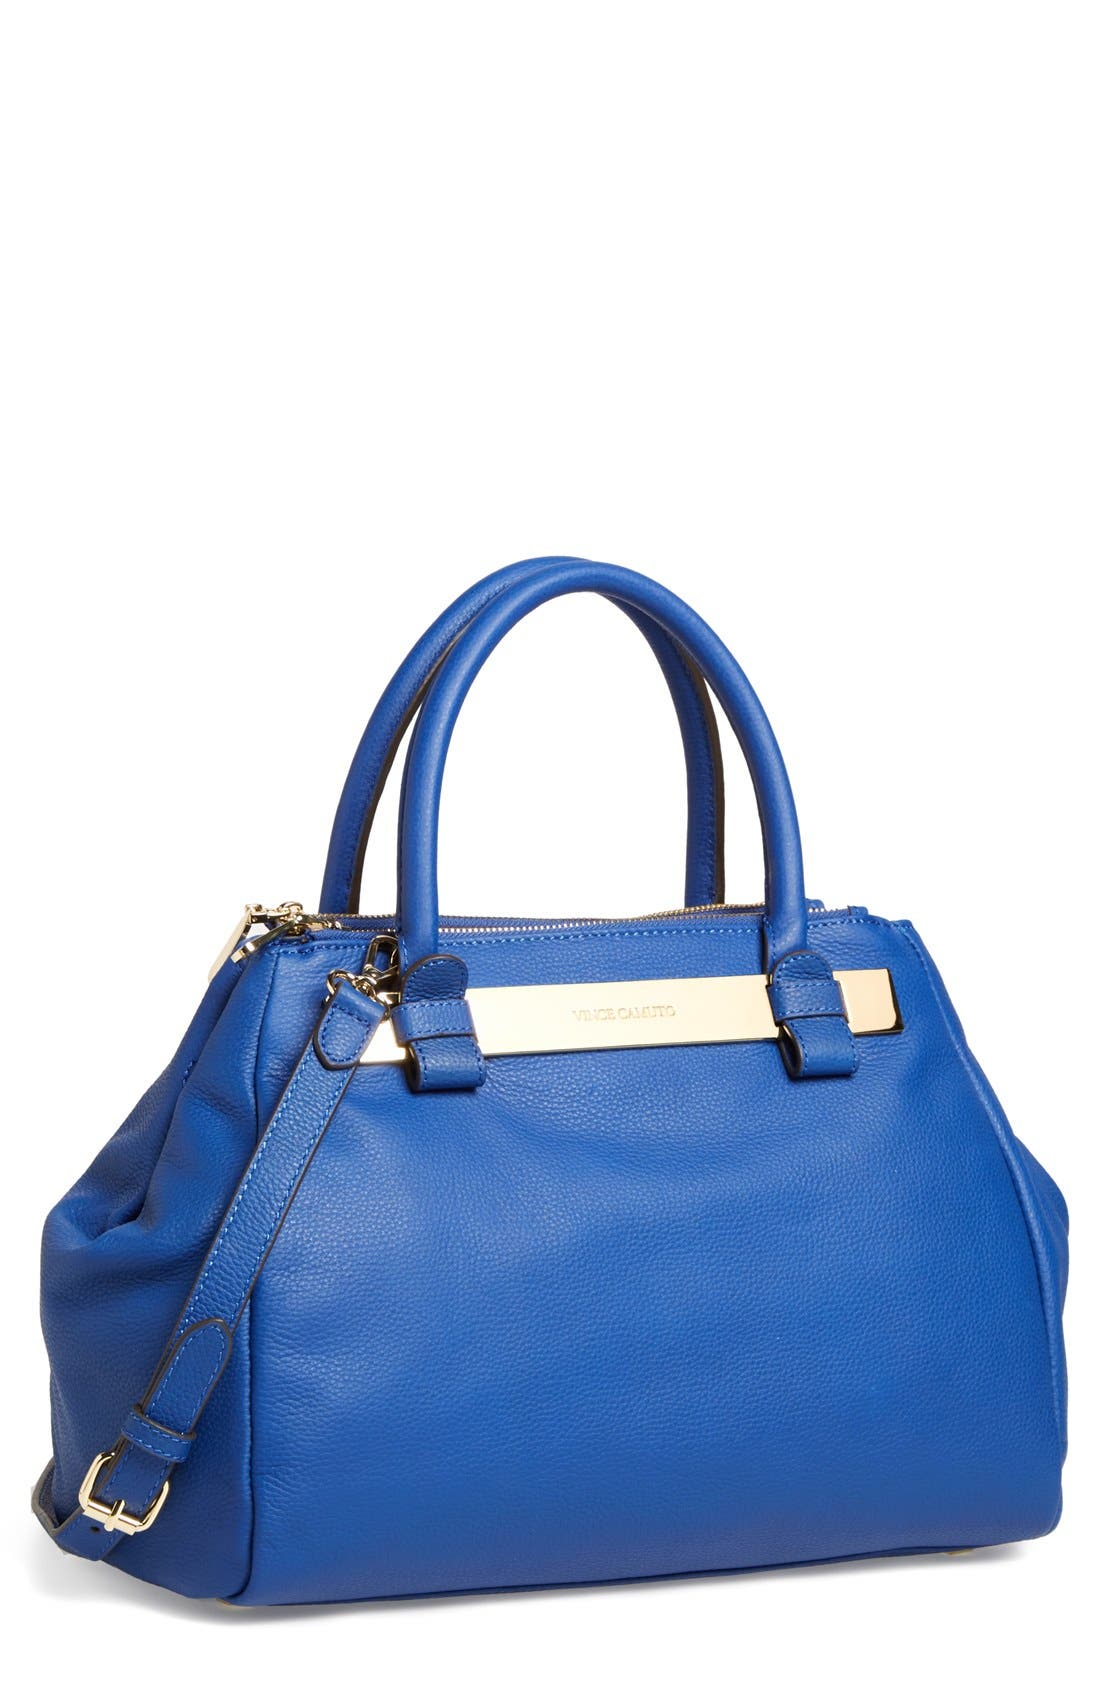 Alternate Image 1 Selected - Vince Camuto 'Jace' Leather Satchel